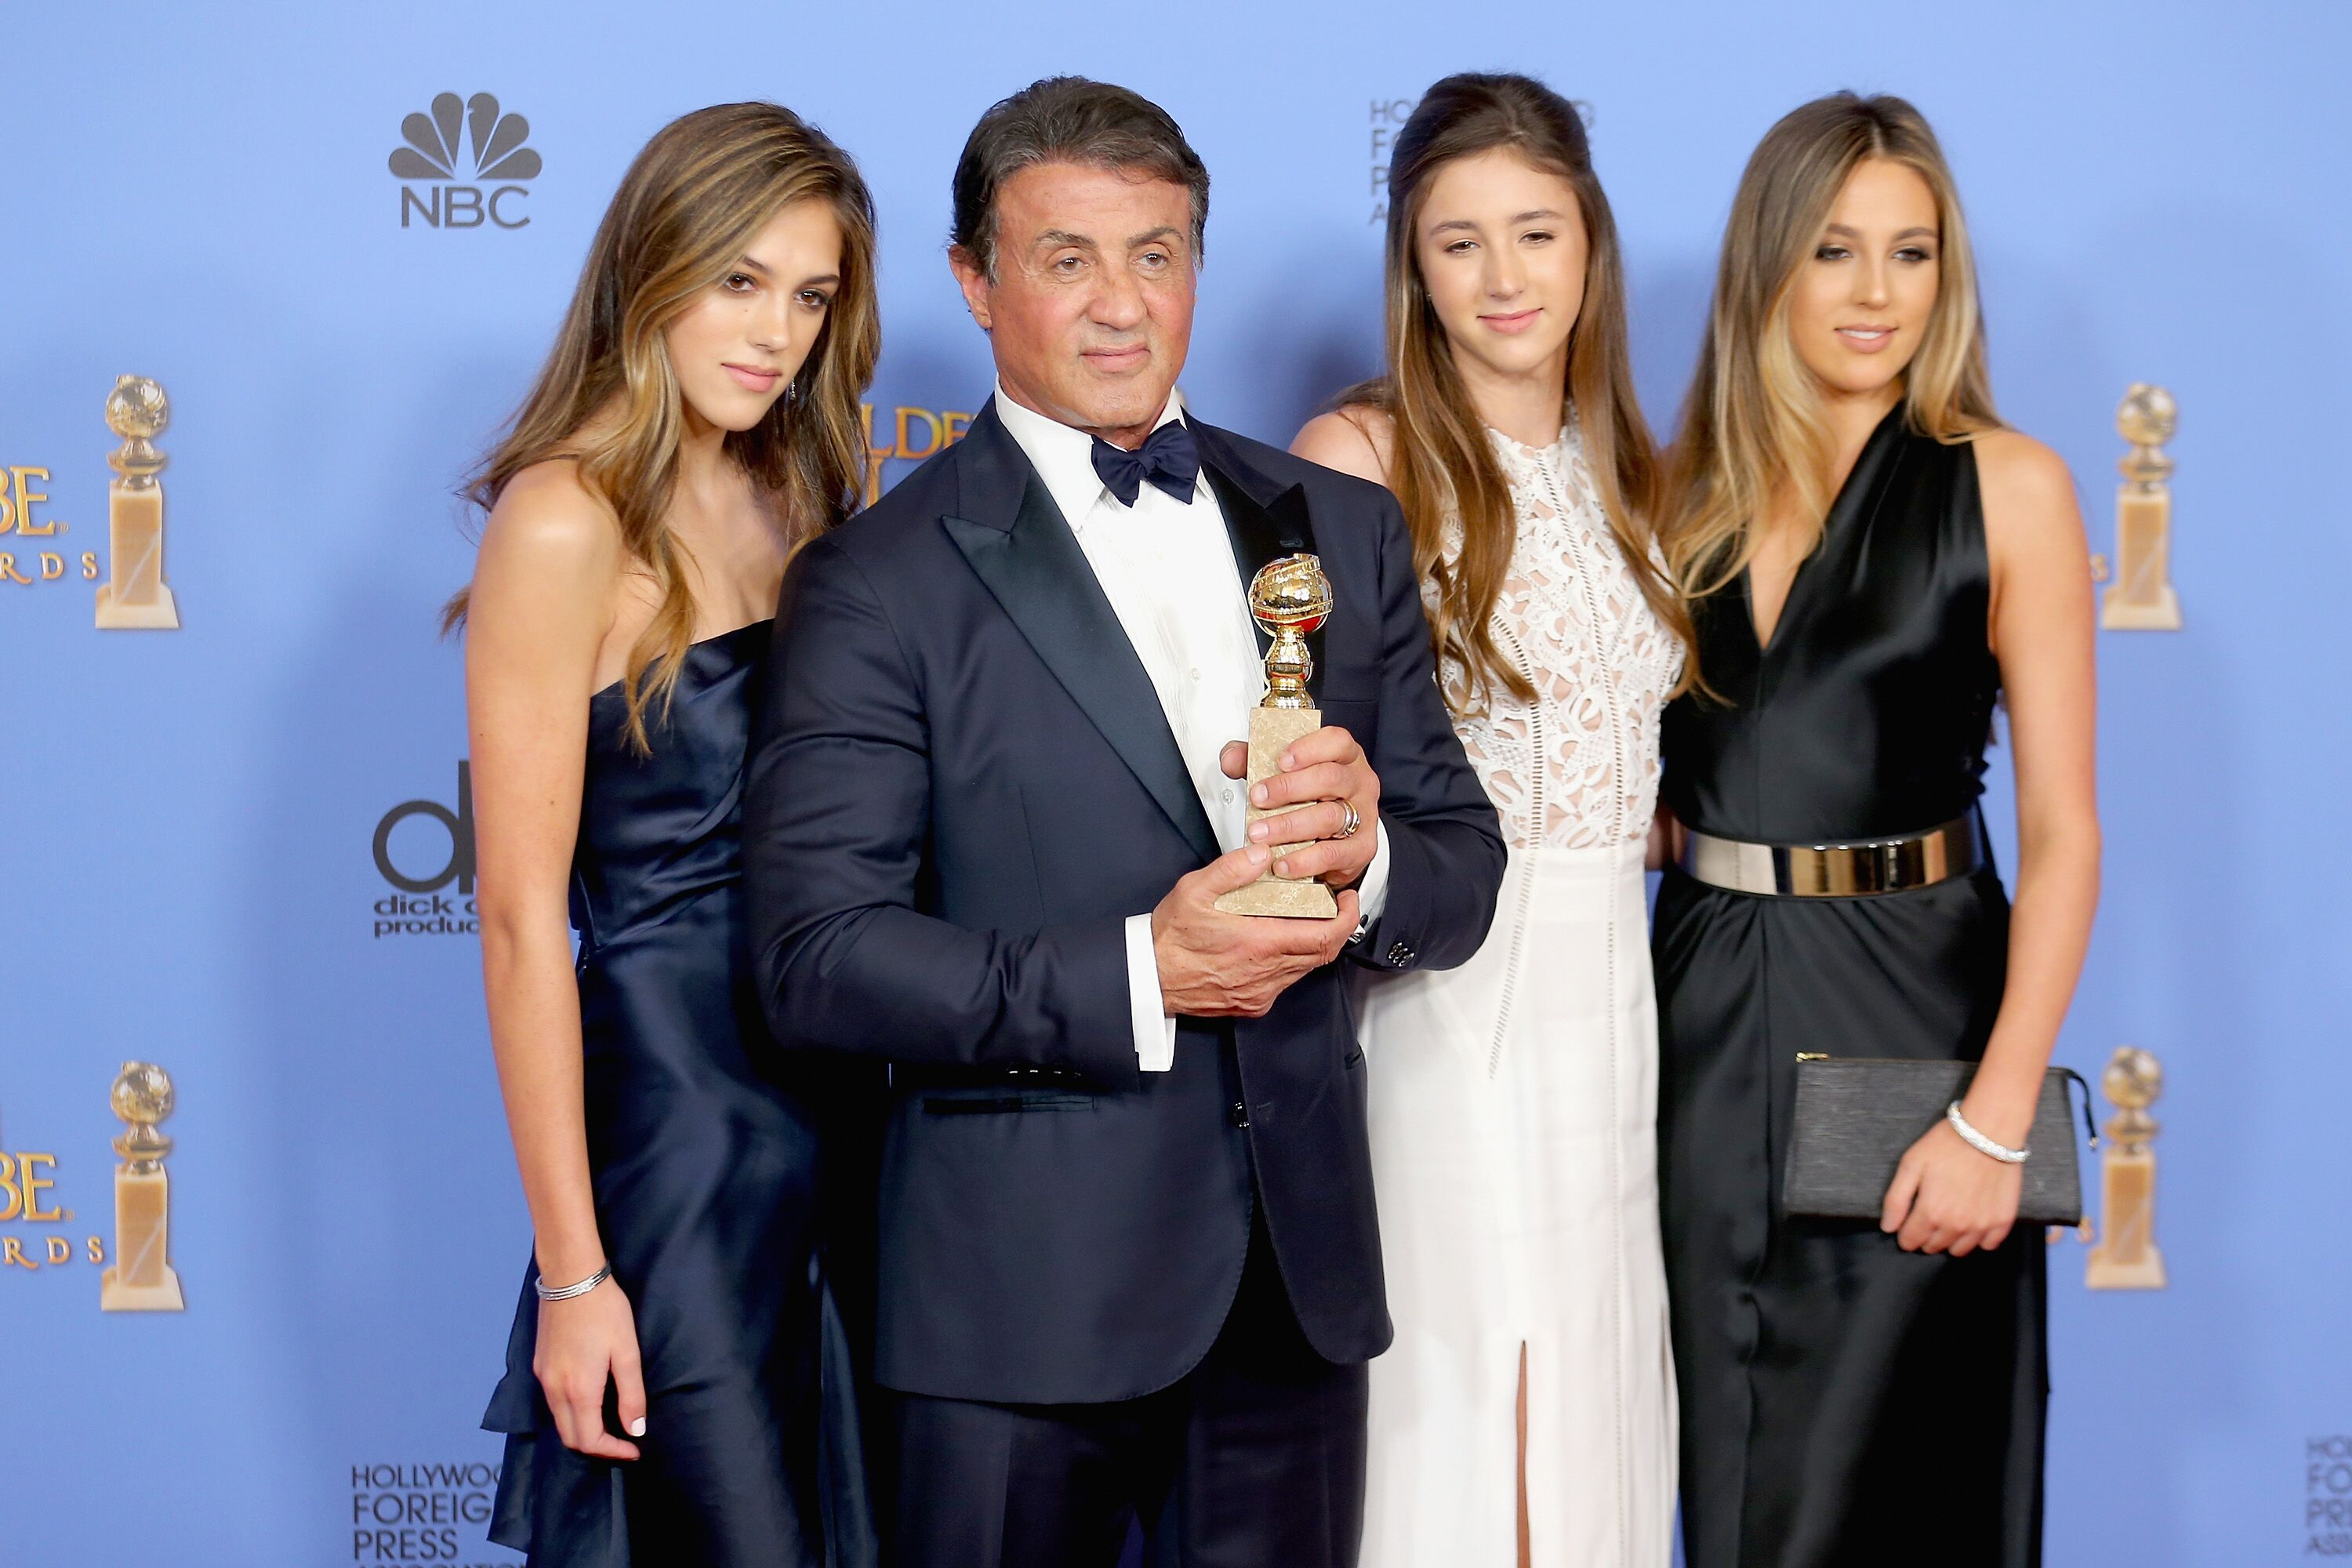 Image Source: Getty Images/Global Images Ukraine | Sylvester Stallone with his daughters Sistine, Sophia and Scarlet at the 73rd Annual Golden Globes